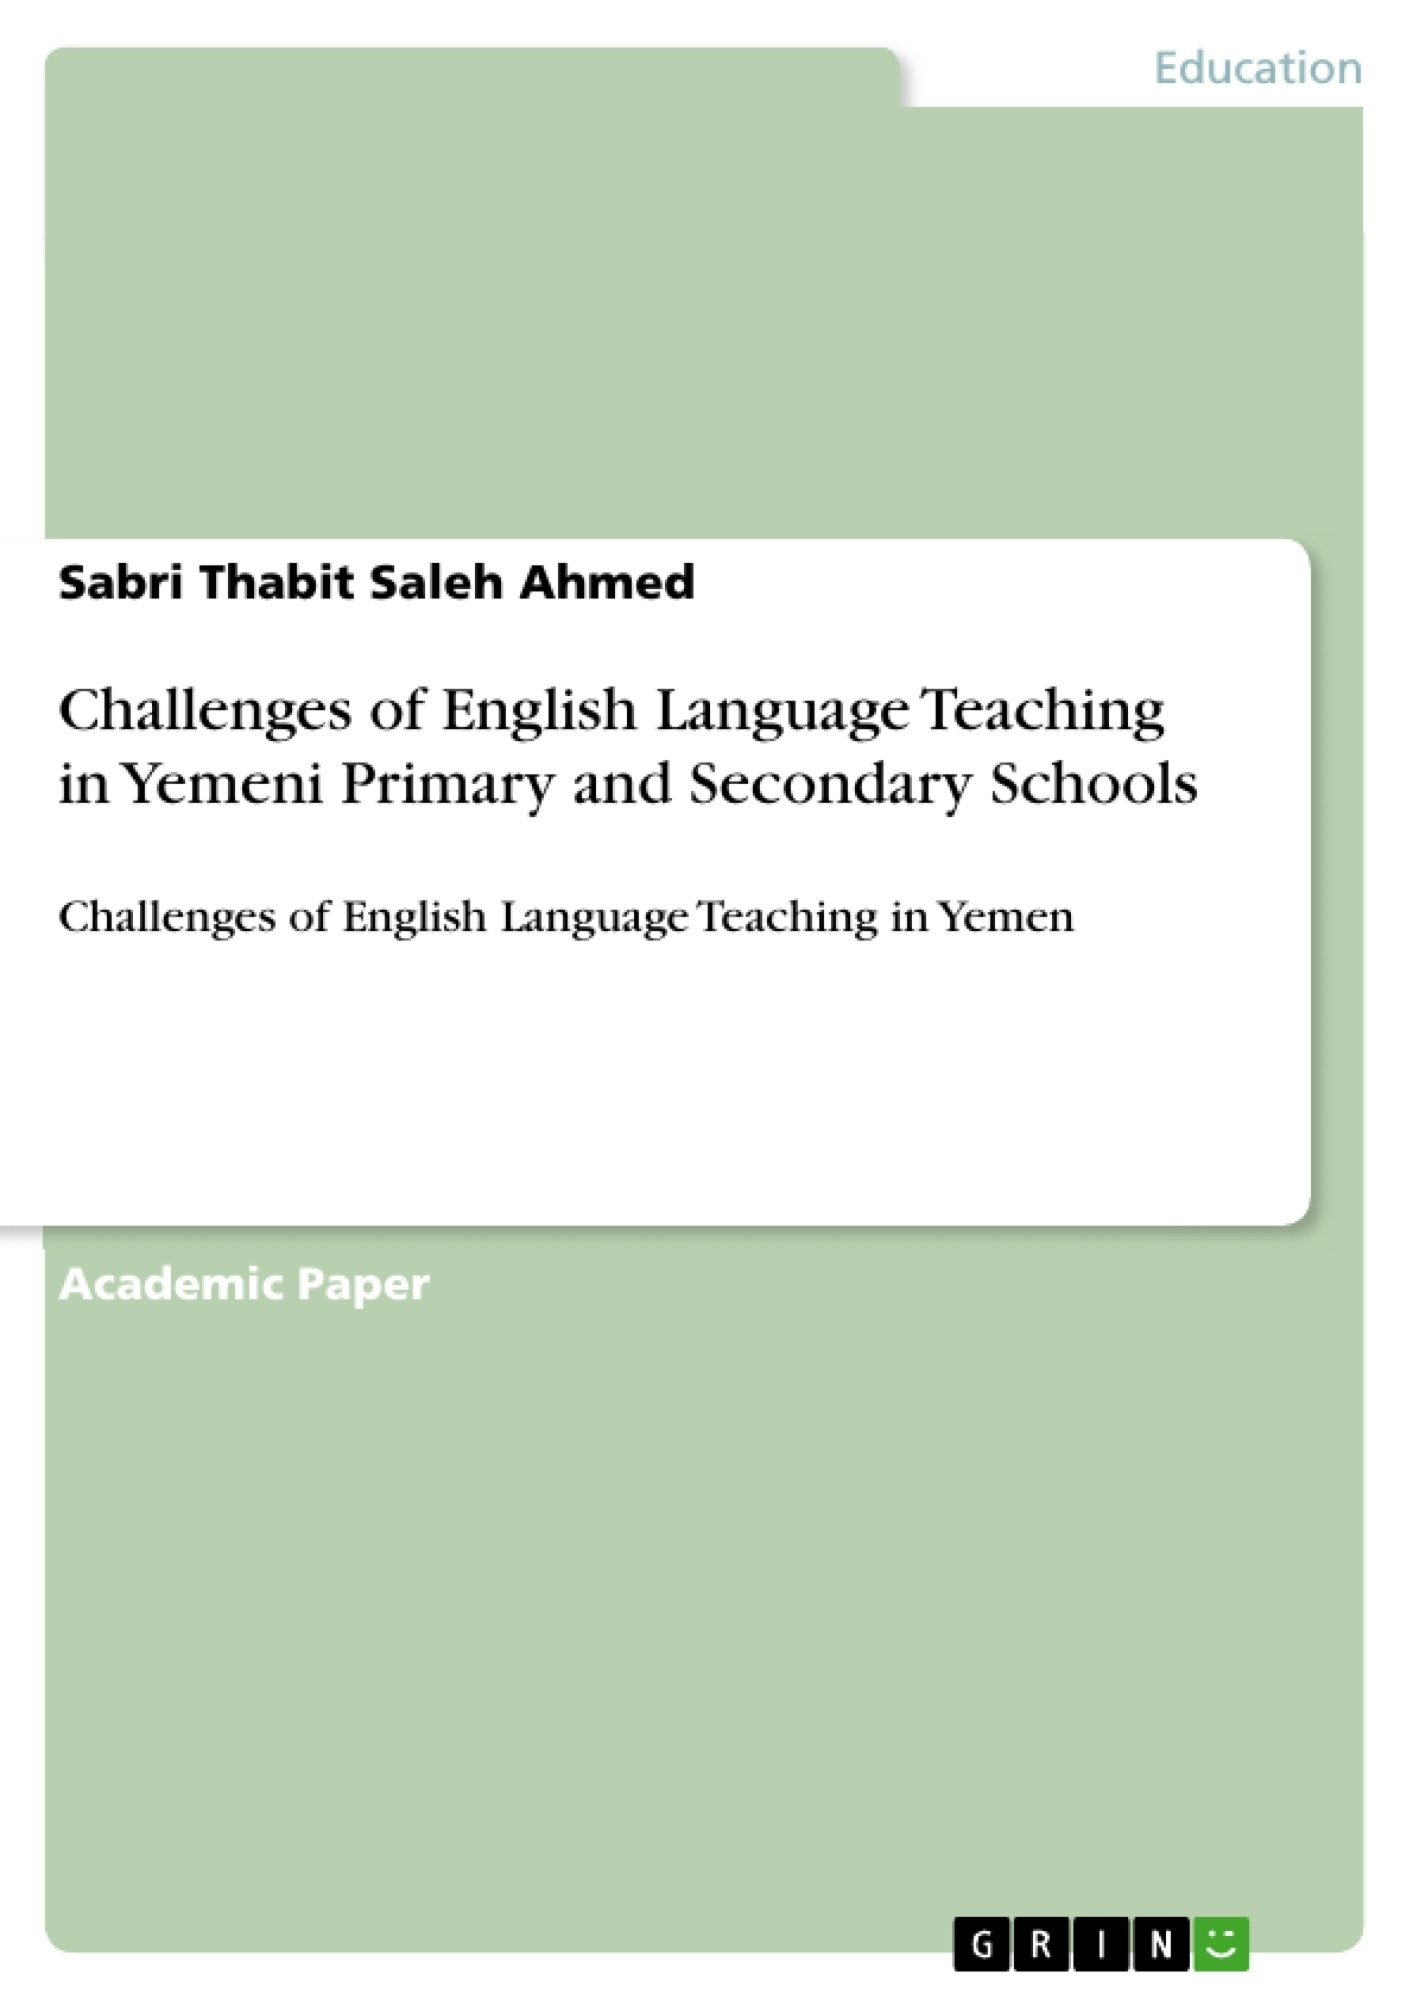 Title: Challenges of English Language Teaching in Yemeni Primary and Secondary Schools